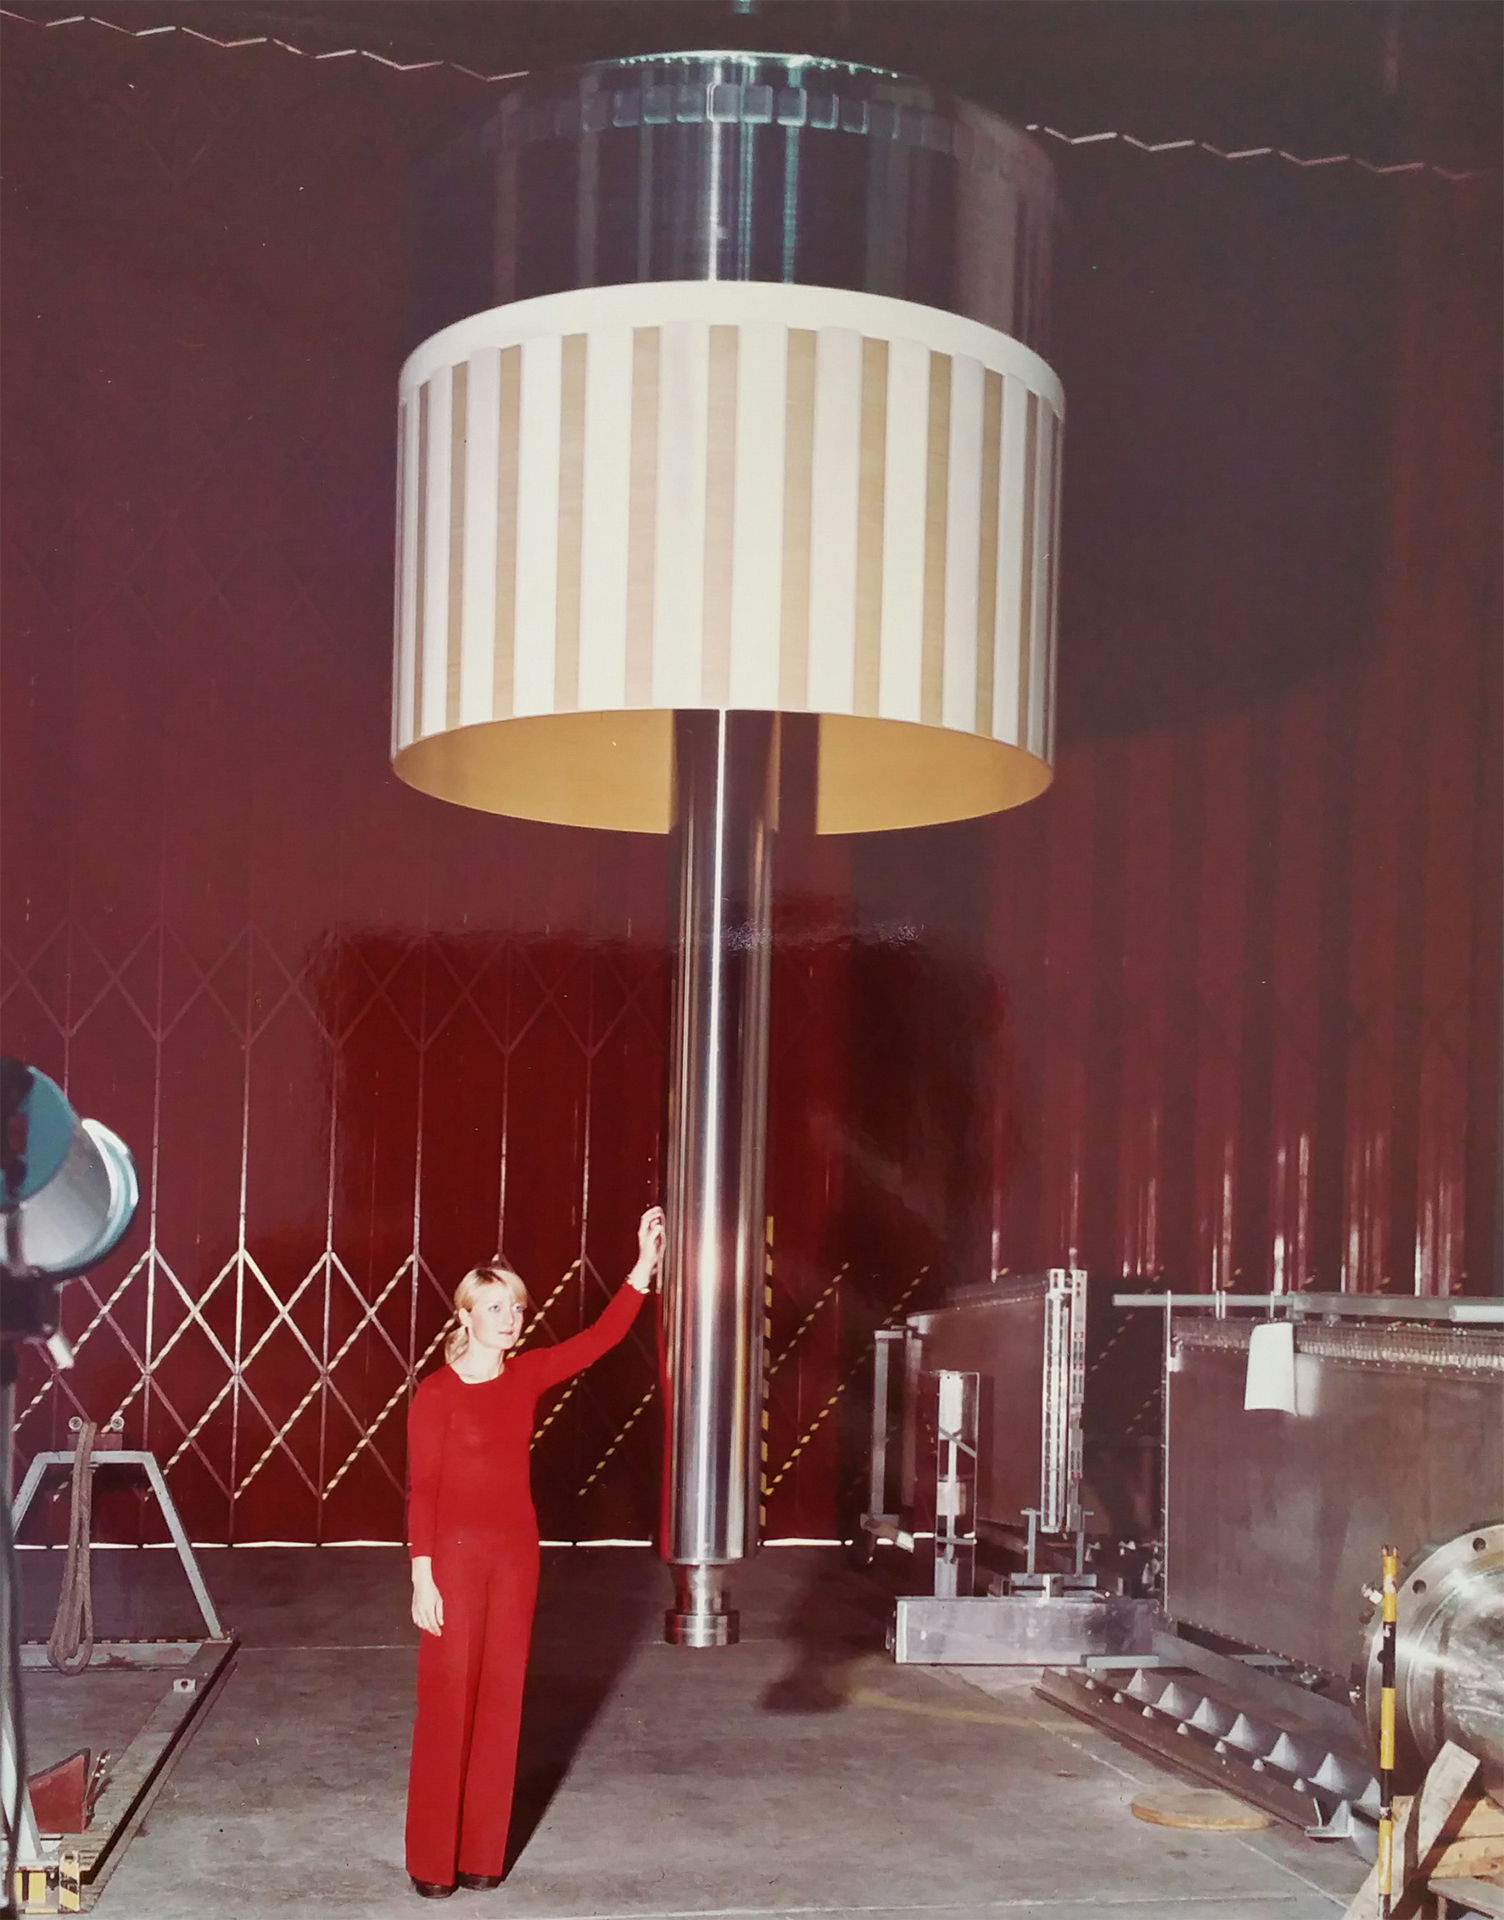 A lady from CERN standing next to a piston used in BEBC